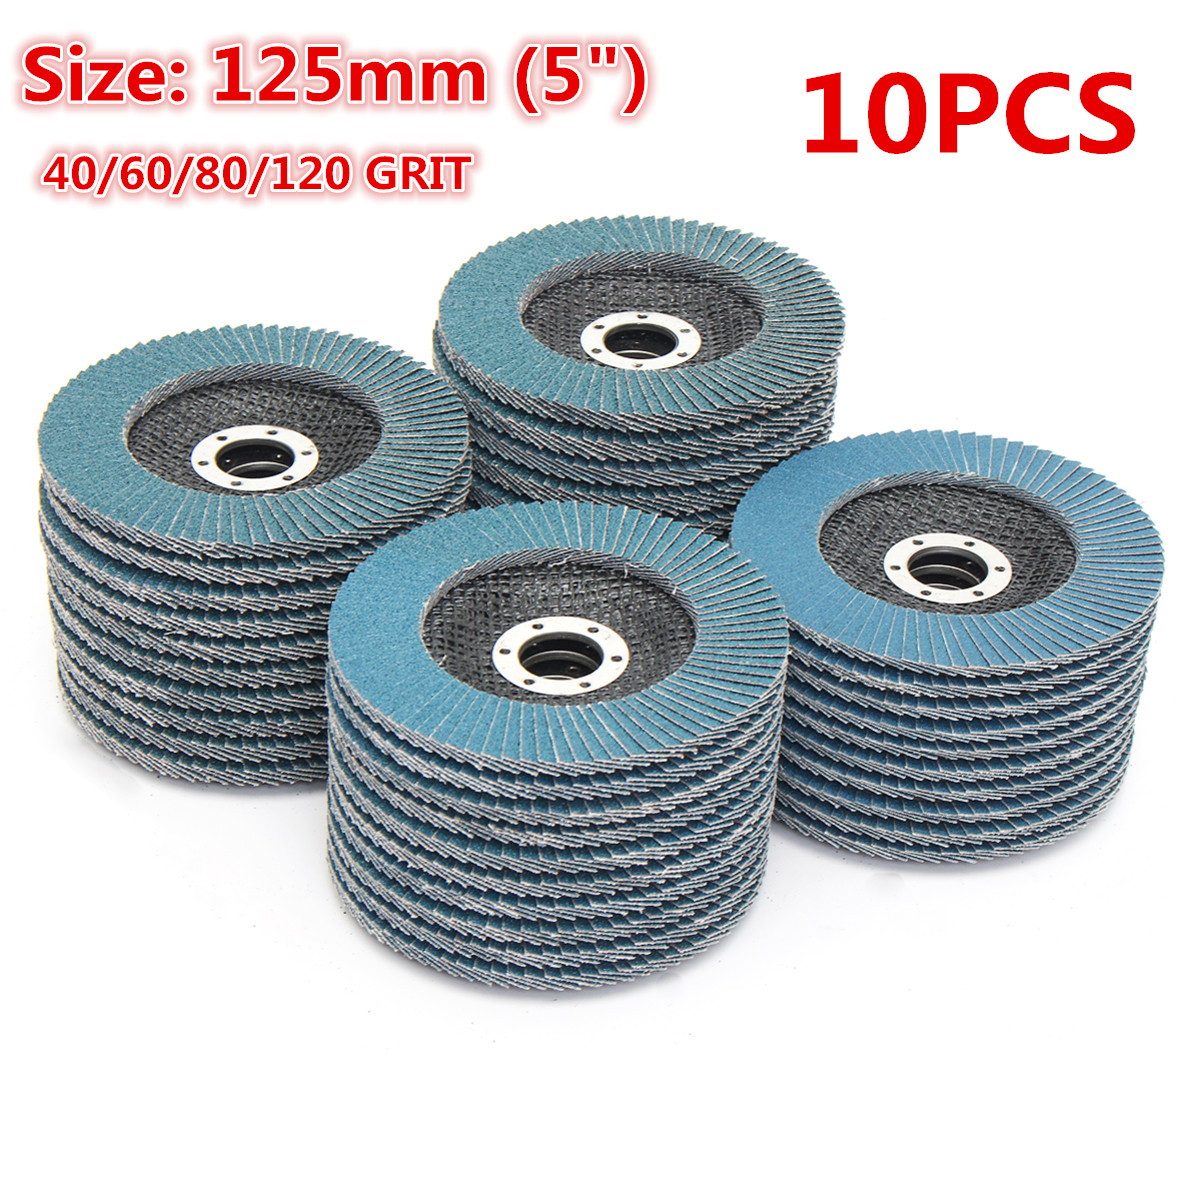 10Pcs Grinding Wheels Flap Discs 125mm 40/60/80/120 Grit Angle Grinder Sanding Discs Metal Plastic Wood Abrasive Tool A65